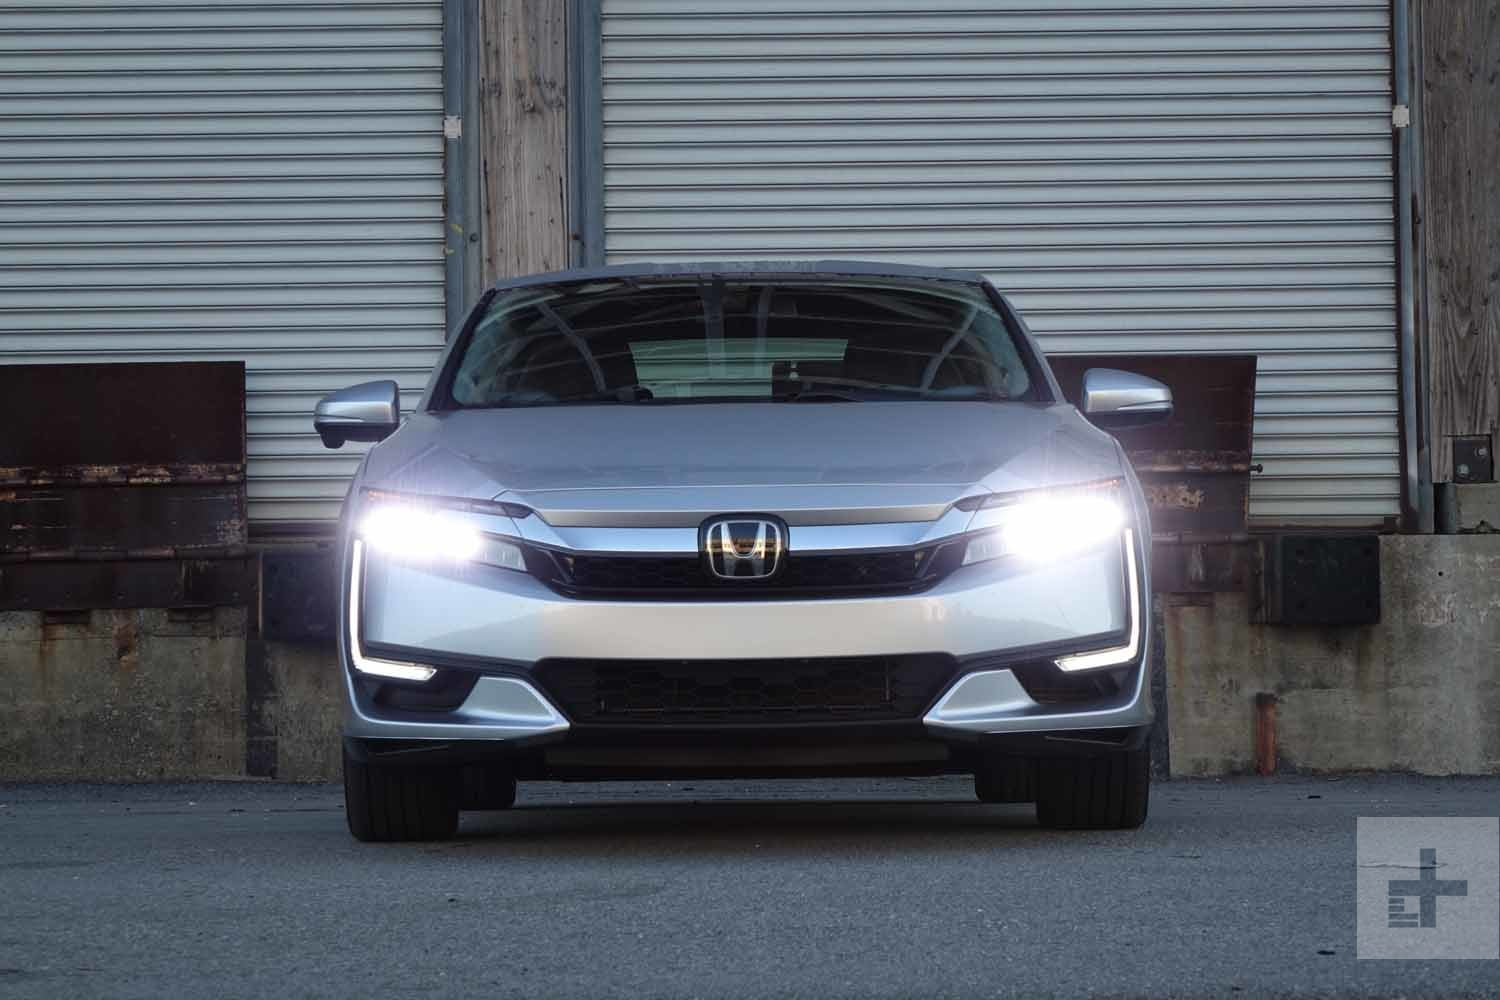 2019 Honda Clarity review: Not the hybrid you're looking for